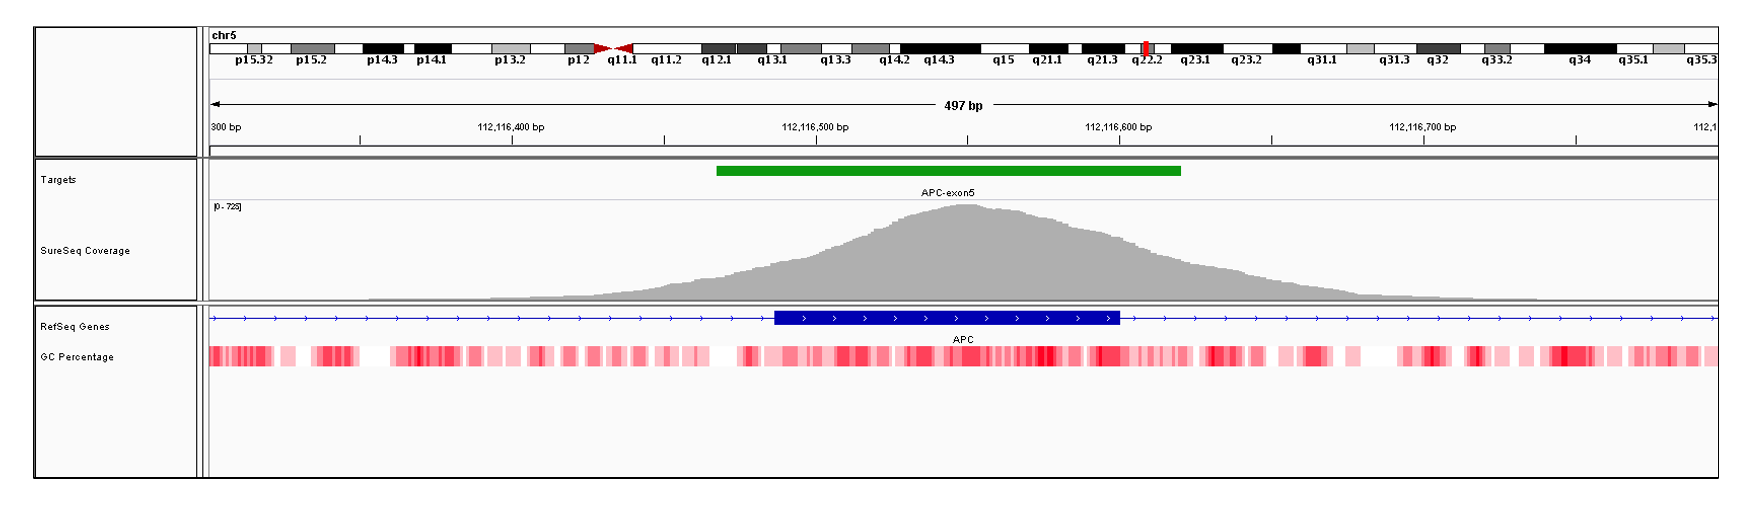 APC Exon 5 (hg19 chr5:112116487-112116600). Depth of coverage per base (grey). Targeted region (green). Gene coding region as defined by RefSeq (blue). GC percentage (red). Image